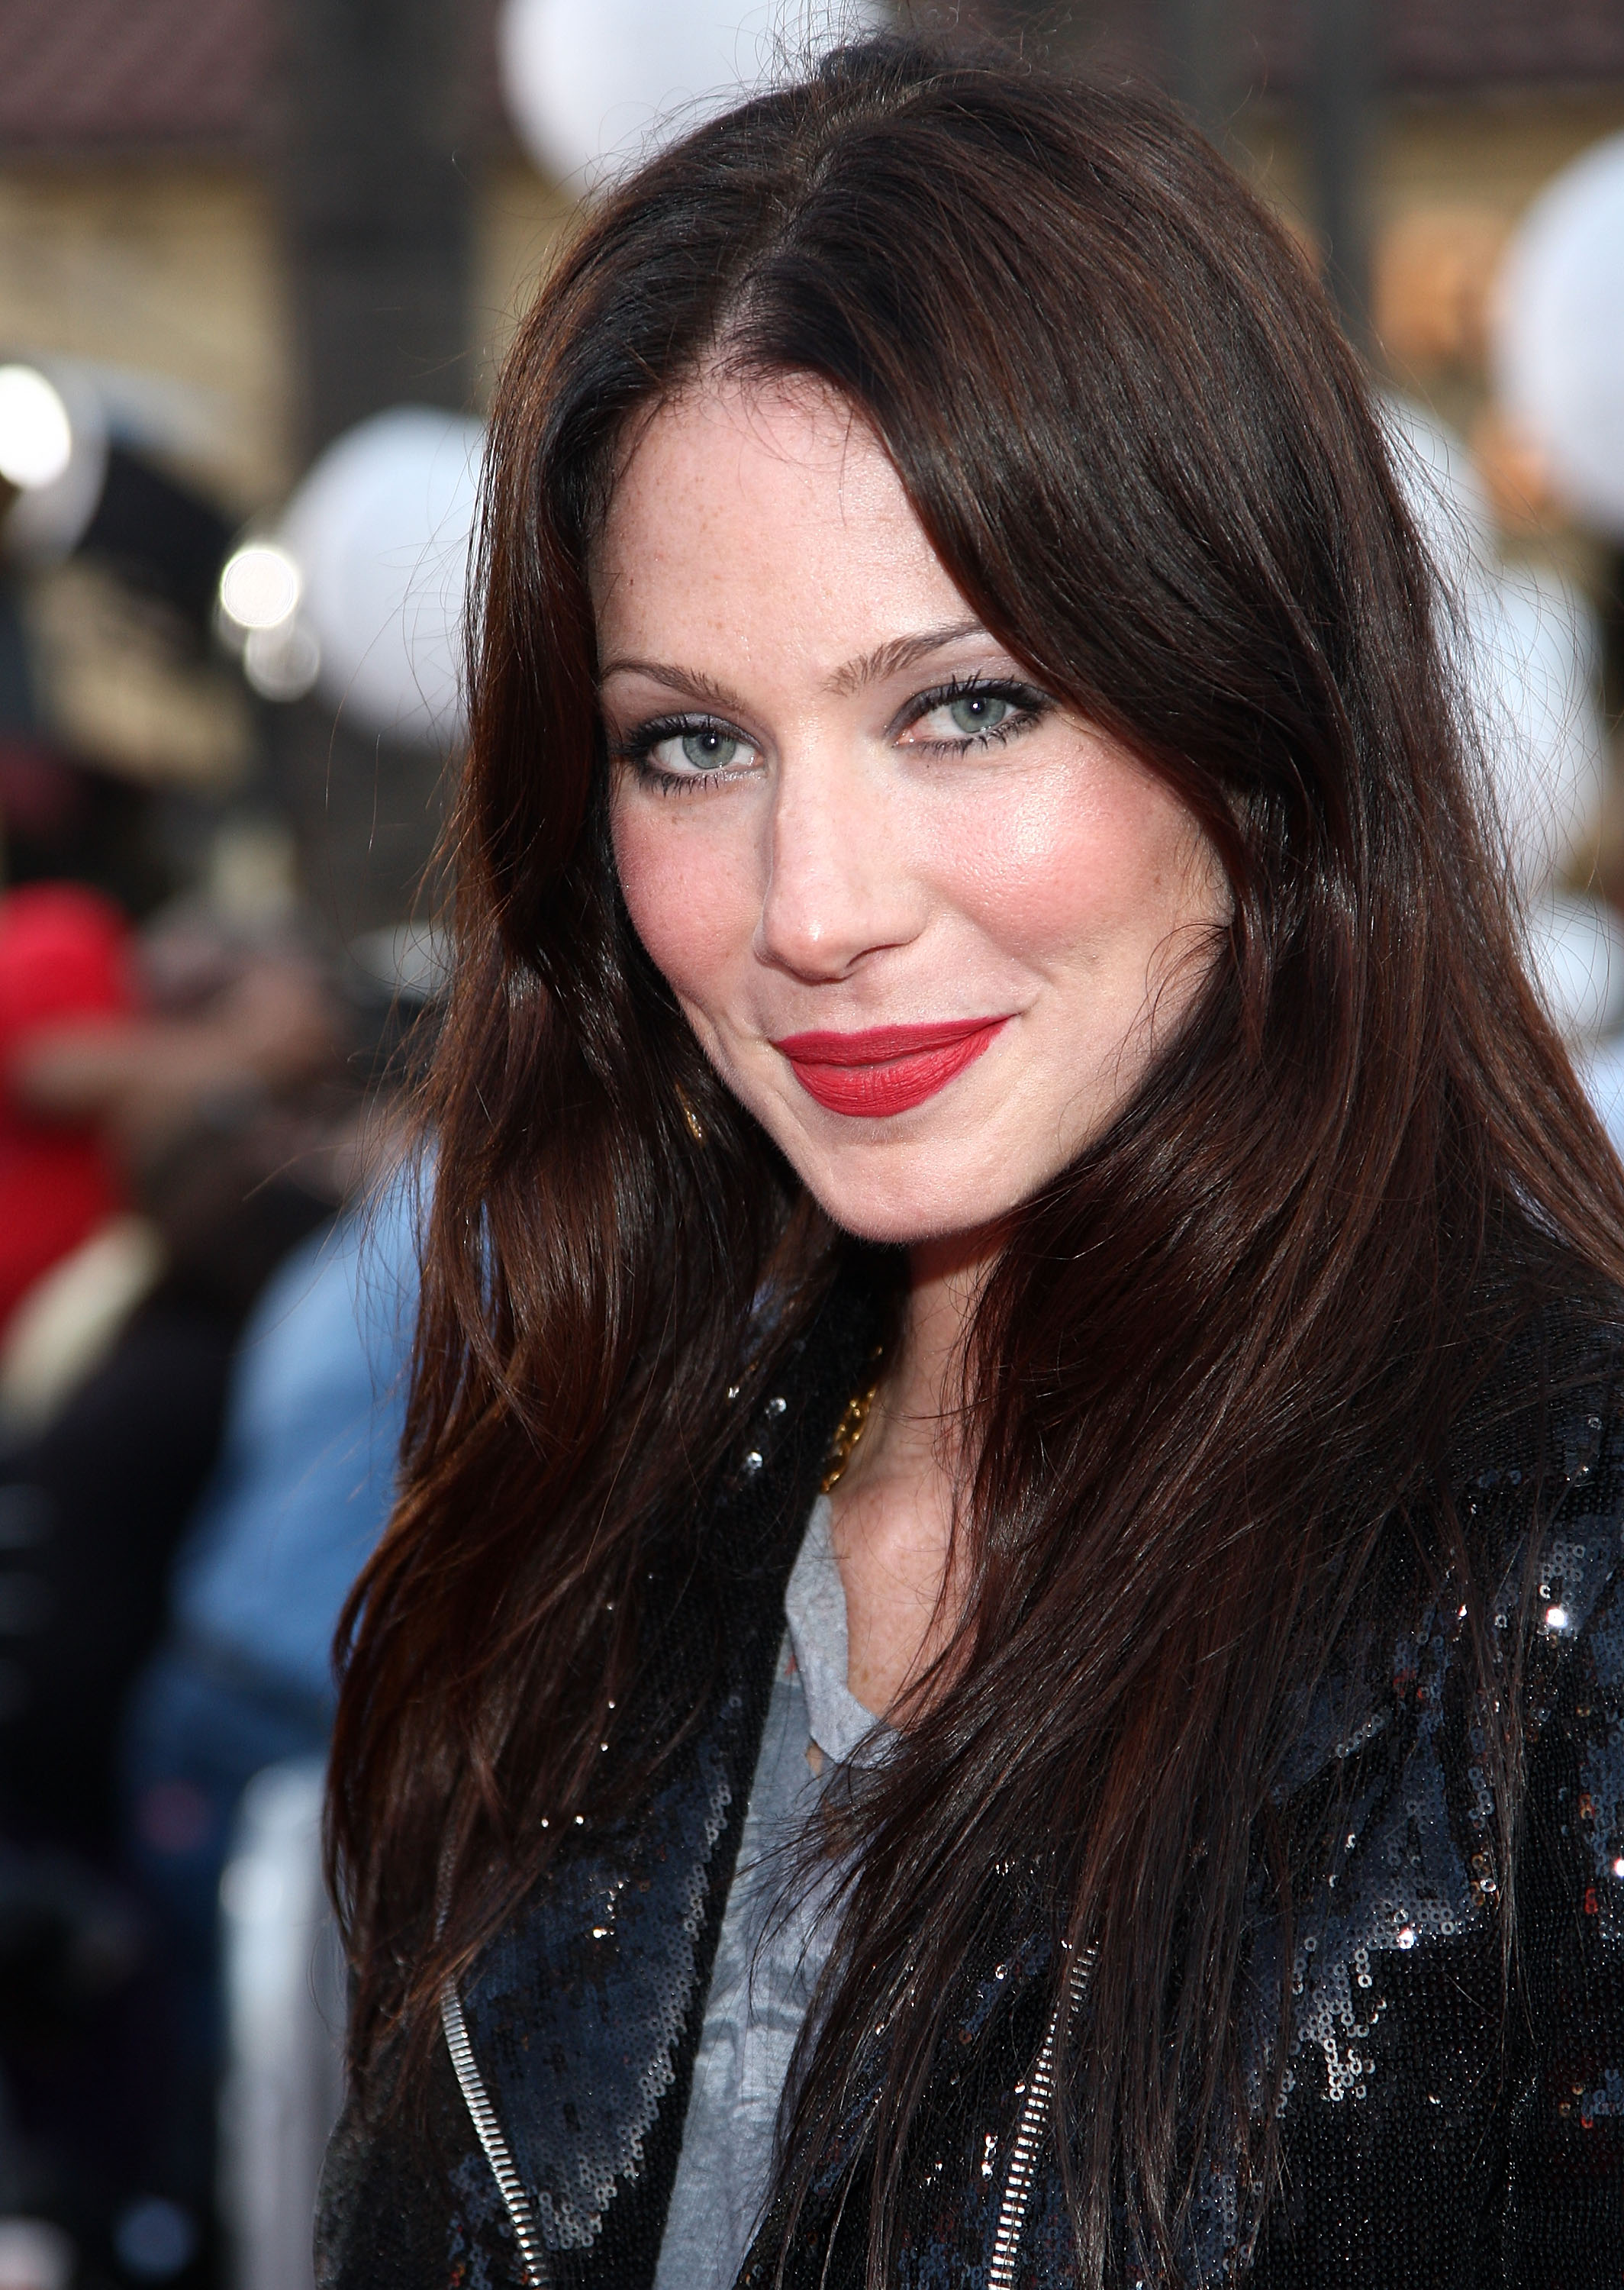 Iphone X Wallpaper Hd Nature Lynn Collins Wallpapers High Quality Download Free